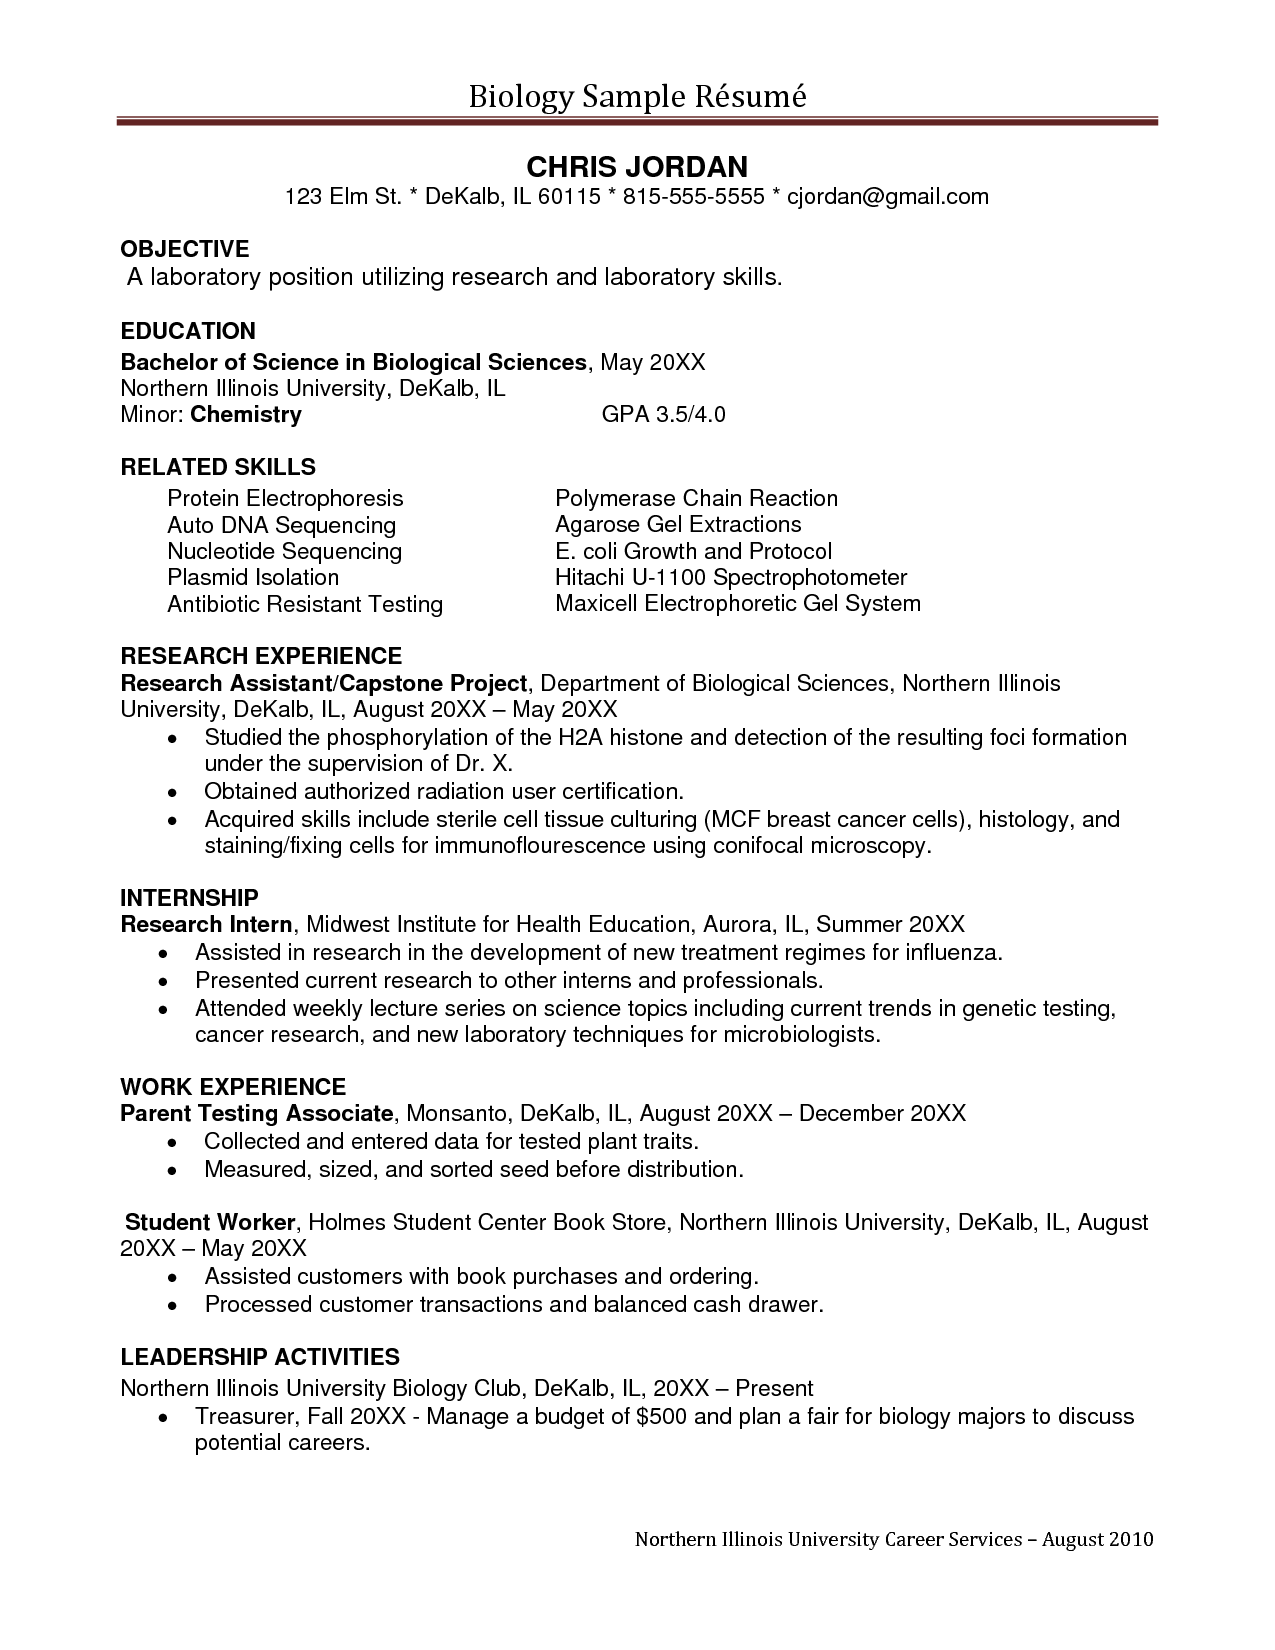 research assistant resumes